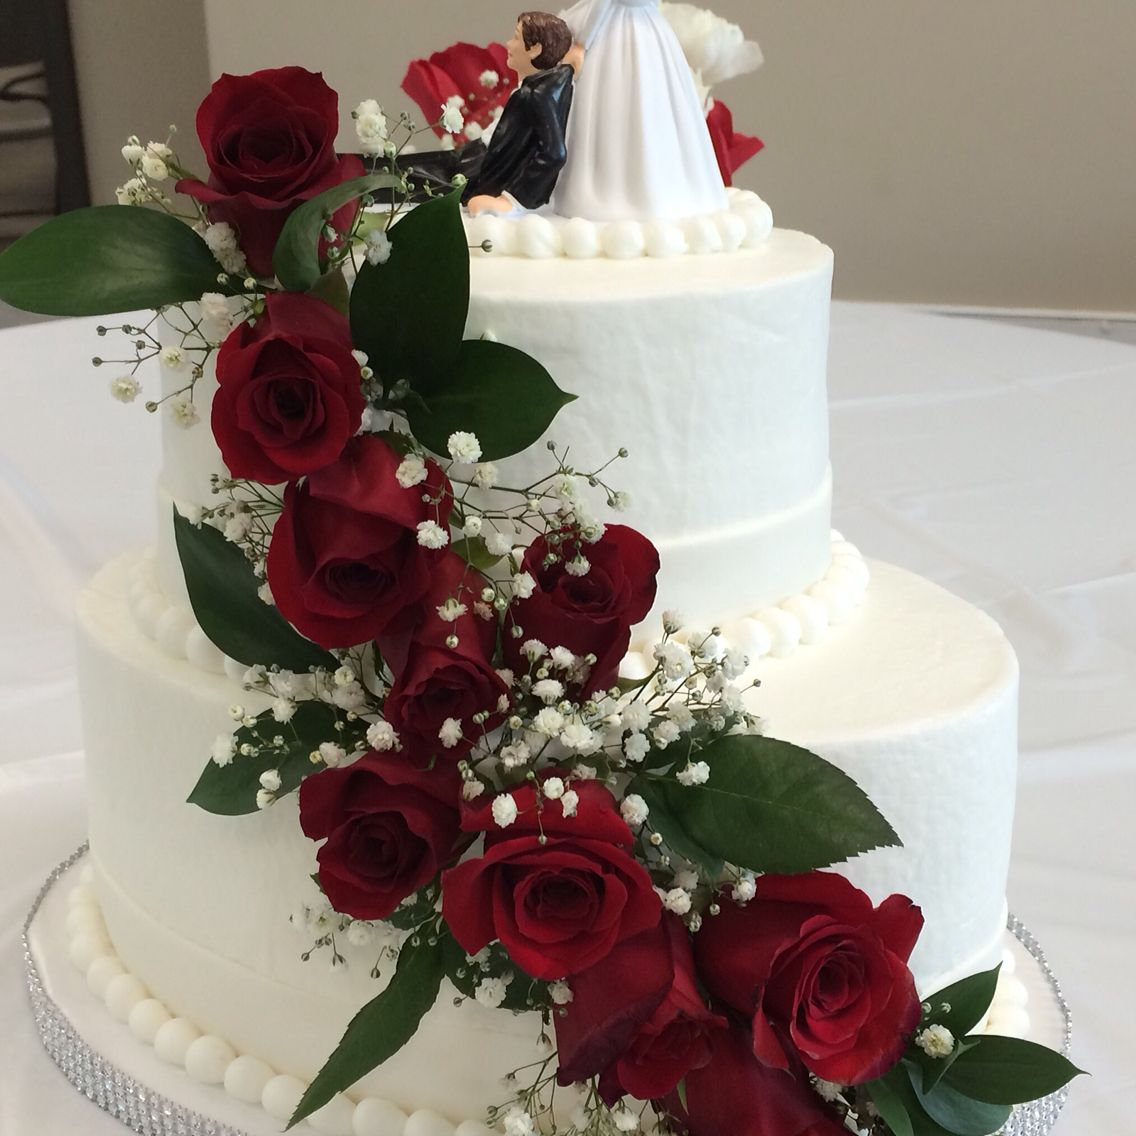 Twotier oval wedding cake with red roses Lavender